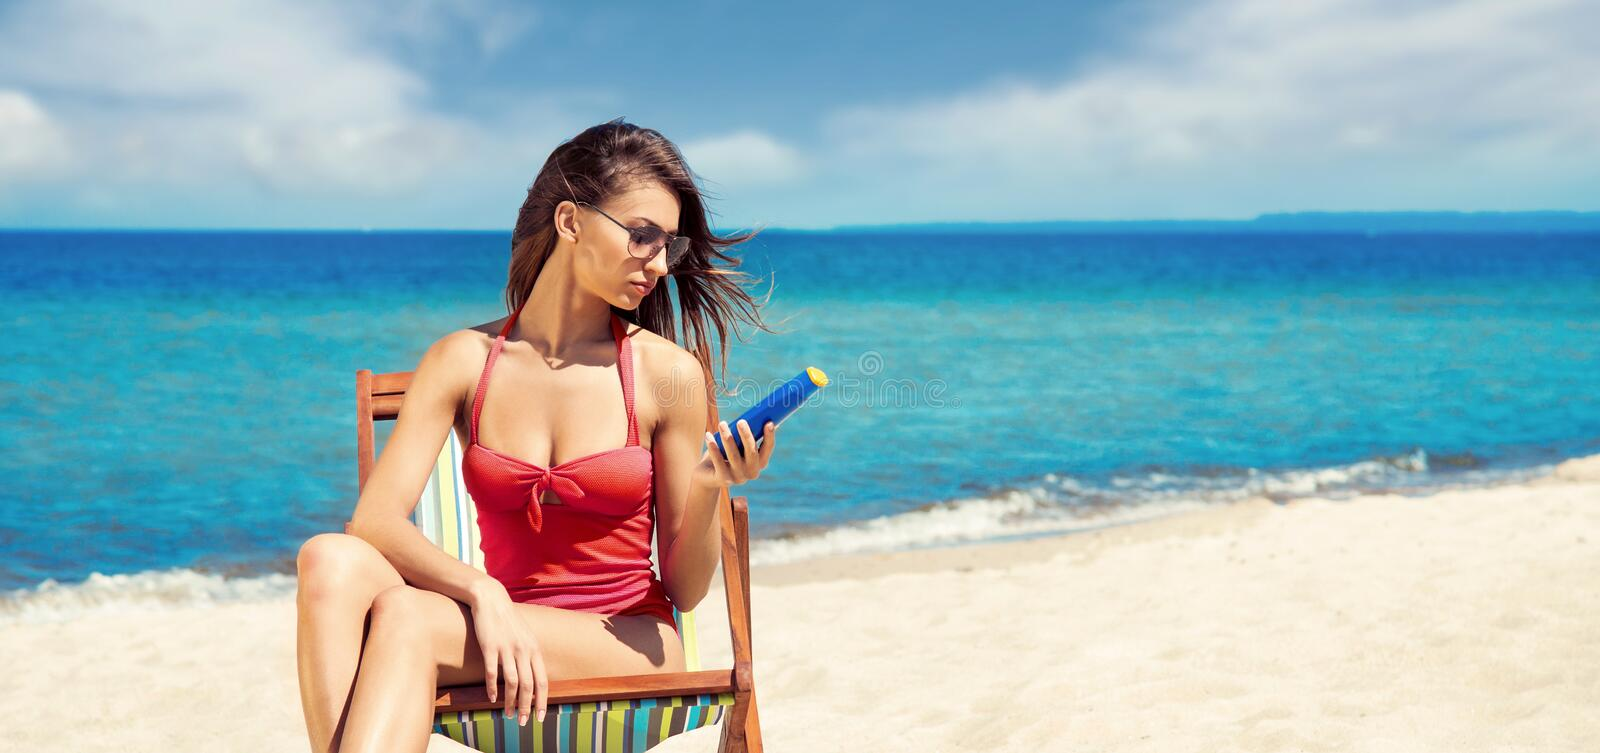 Fit and sporty young girl posing on a Thai beach. Travel, vacation, holiday, concept. stock image